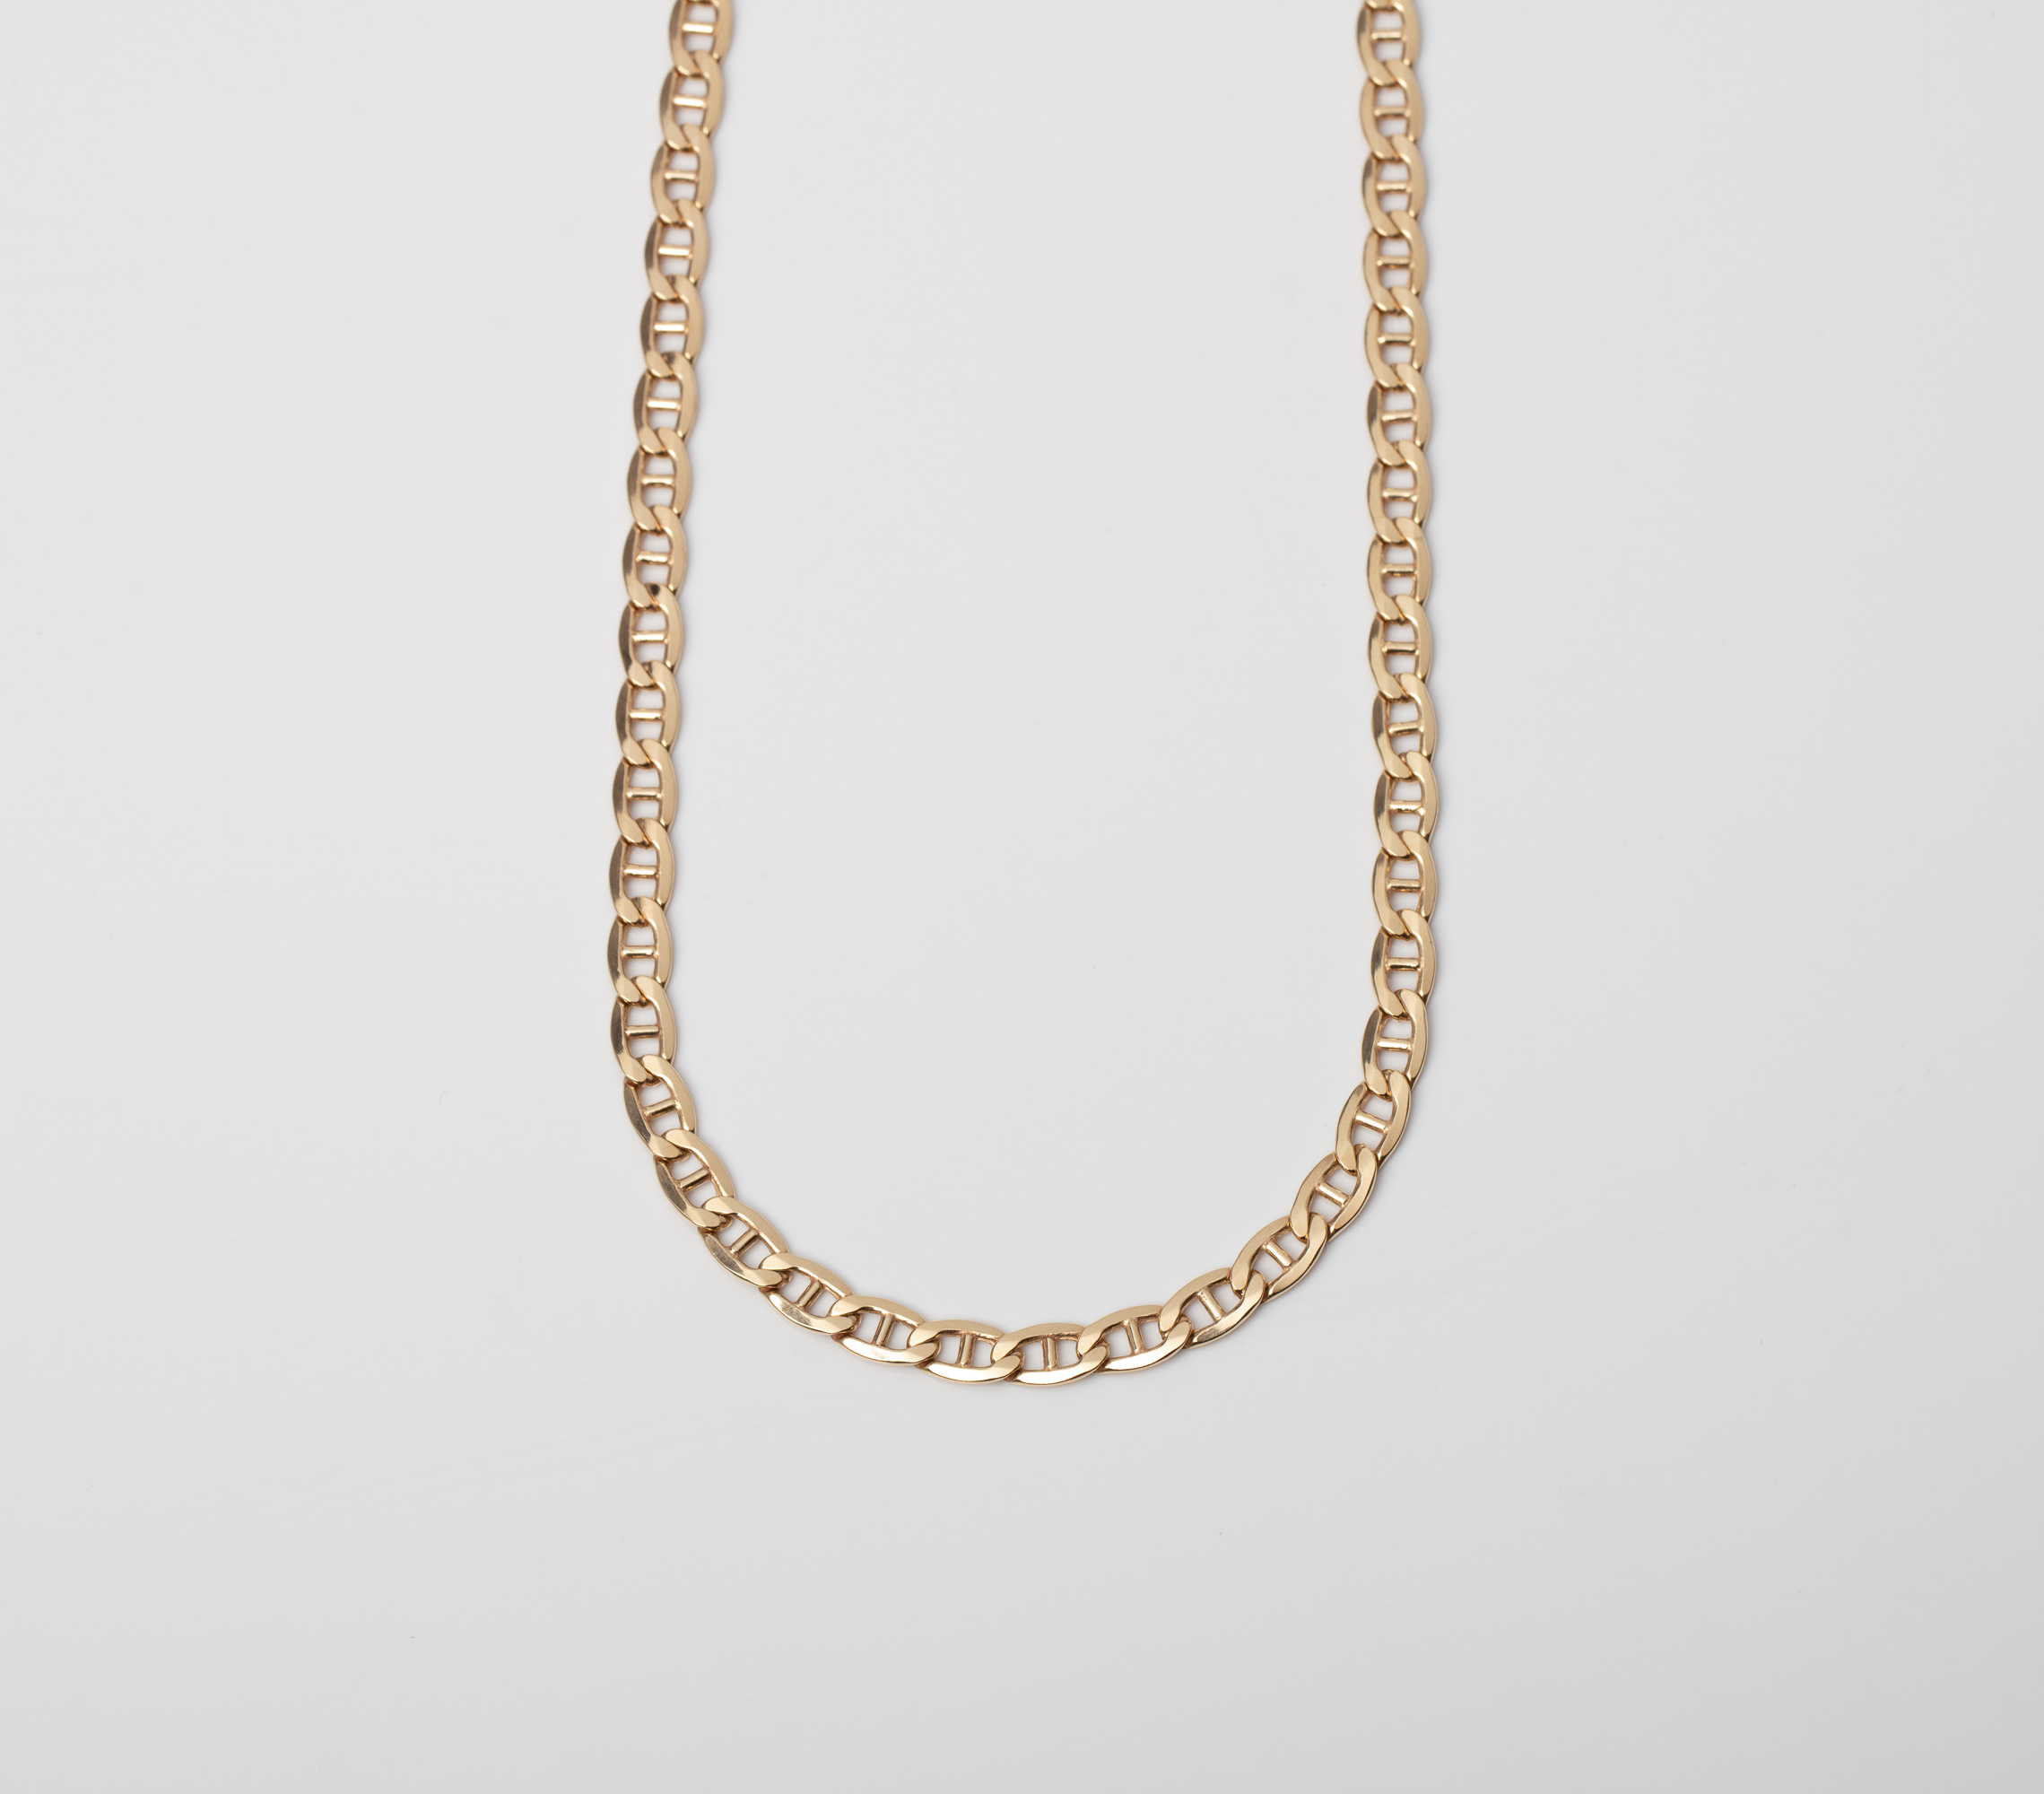 A 9CT GOLD AND SILVER BONDED MARINER CHAIN